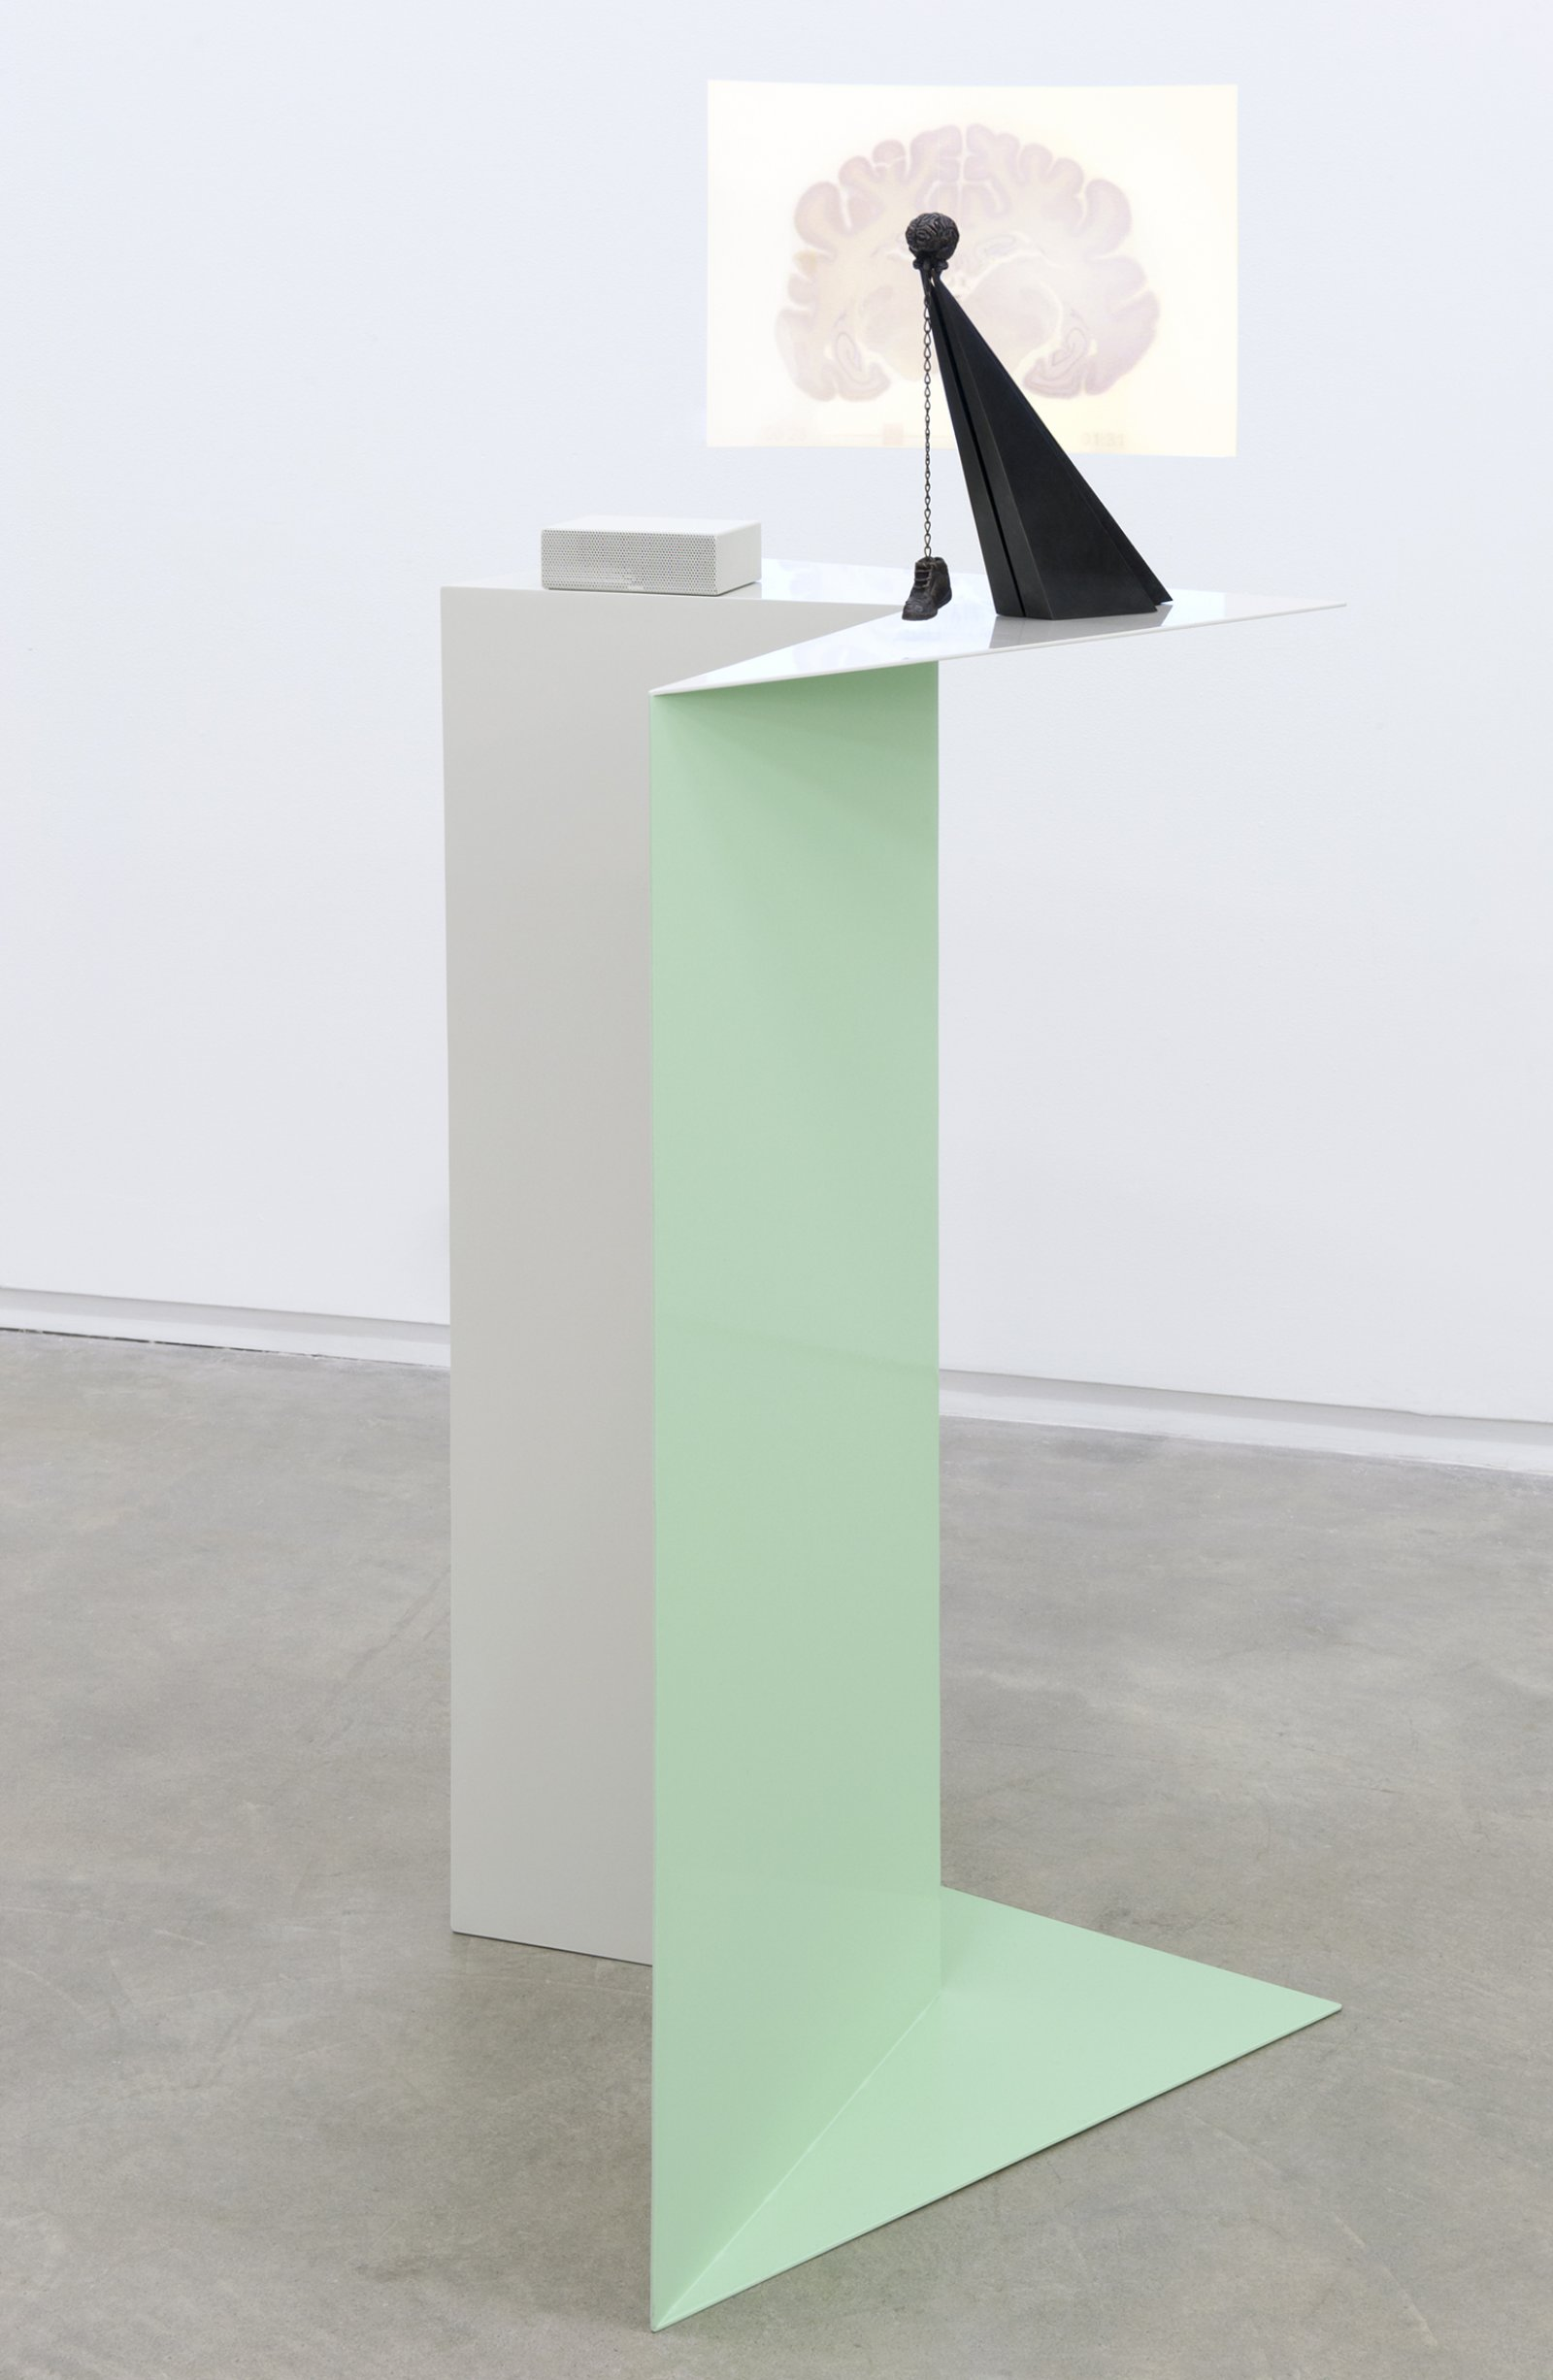 Judy Radul, Midtown Plaza-end of the autopsy, 2011, steel, bronze, LED video projector, string, 54 x 27 x 25 in. (136 x 69 x 62 cm) by Judy Radul